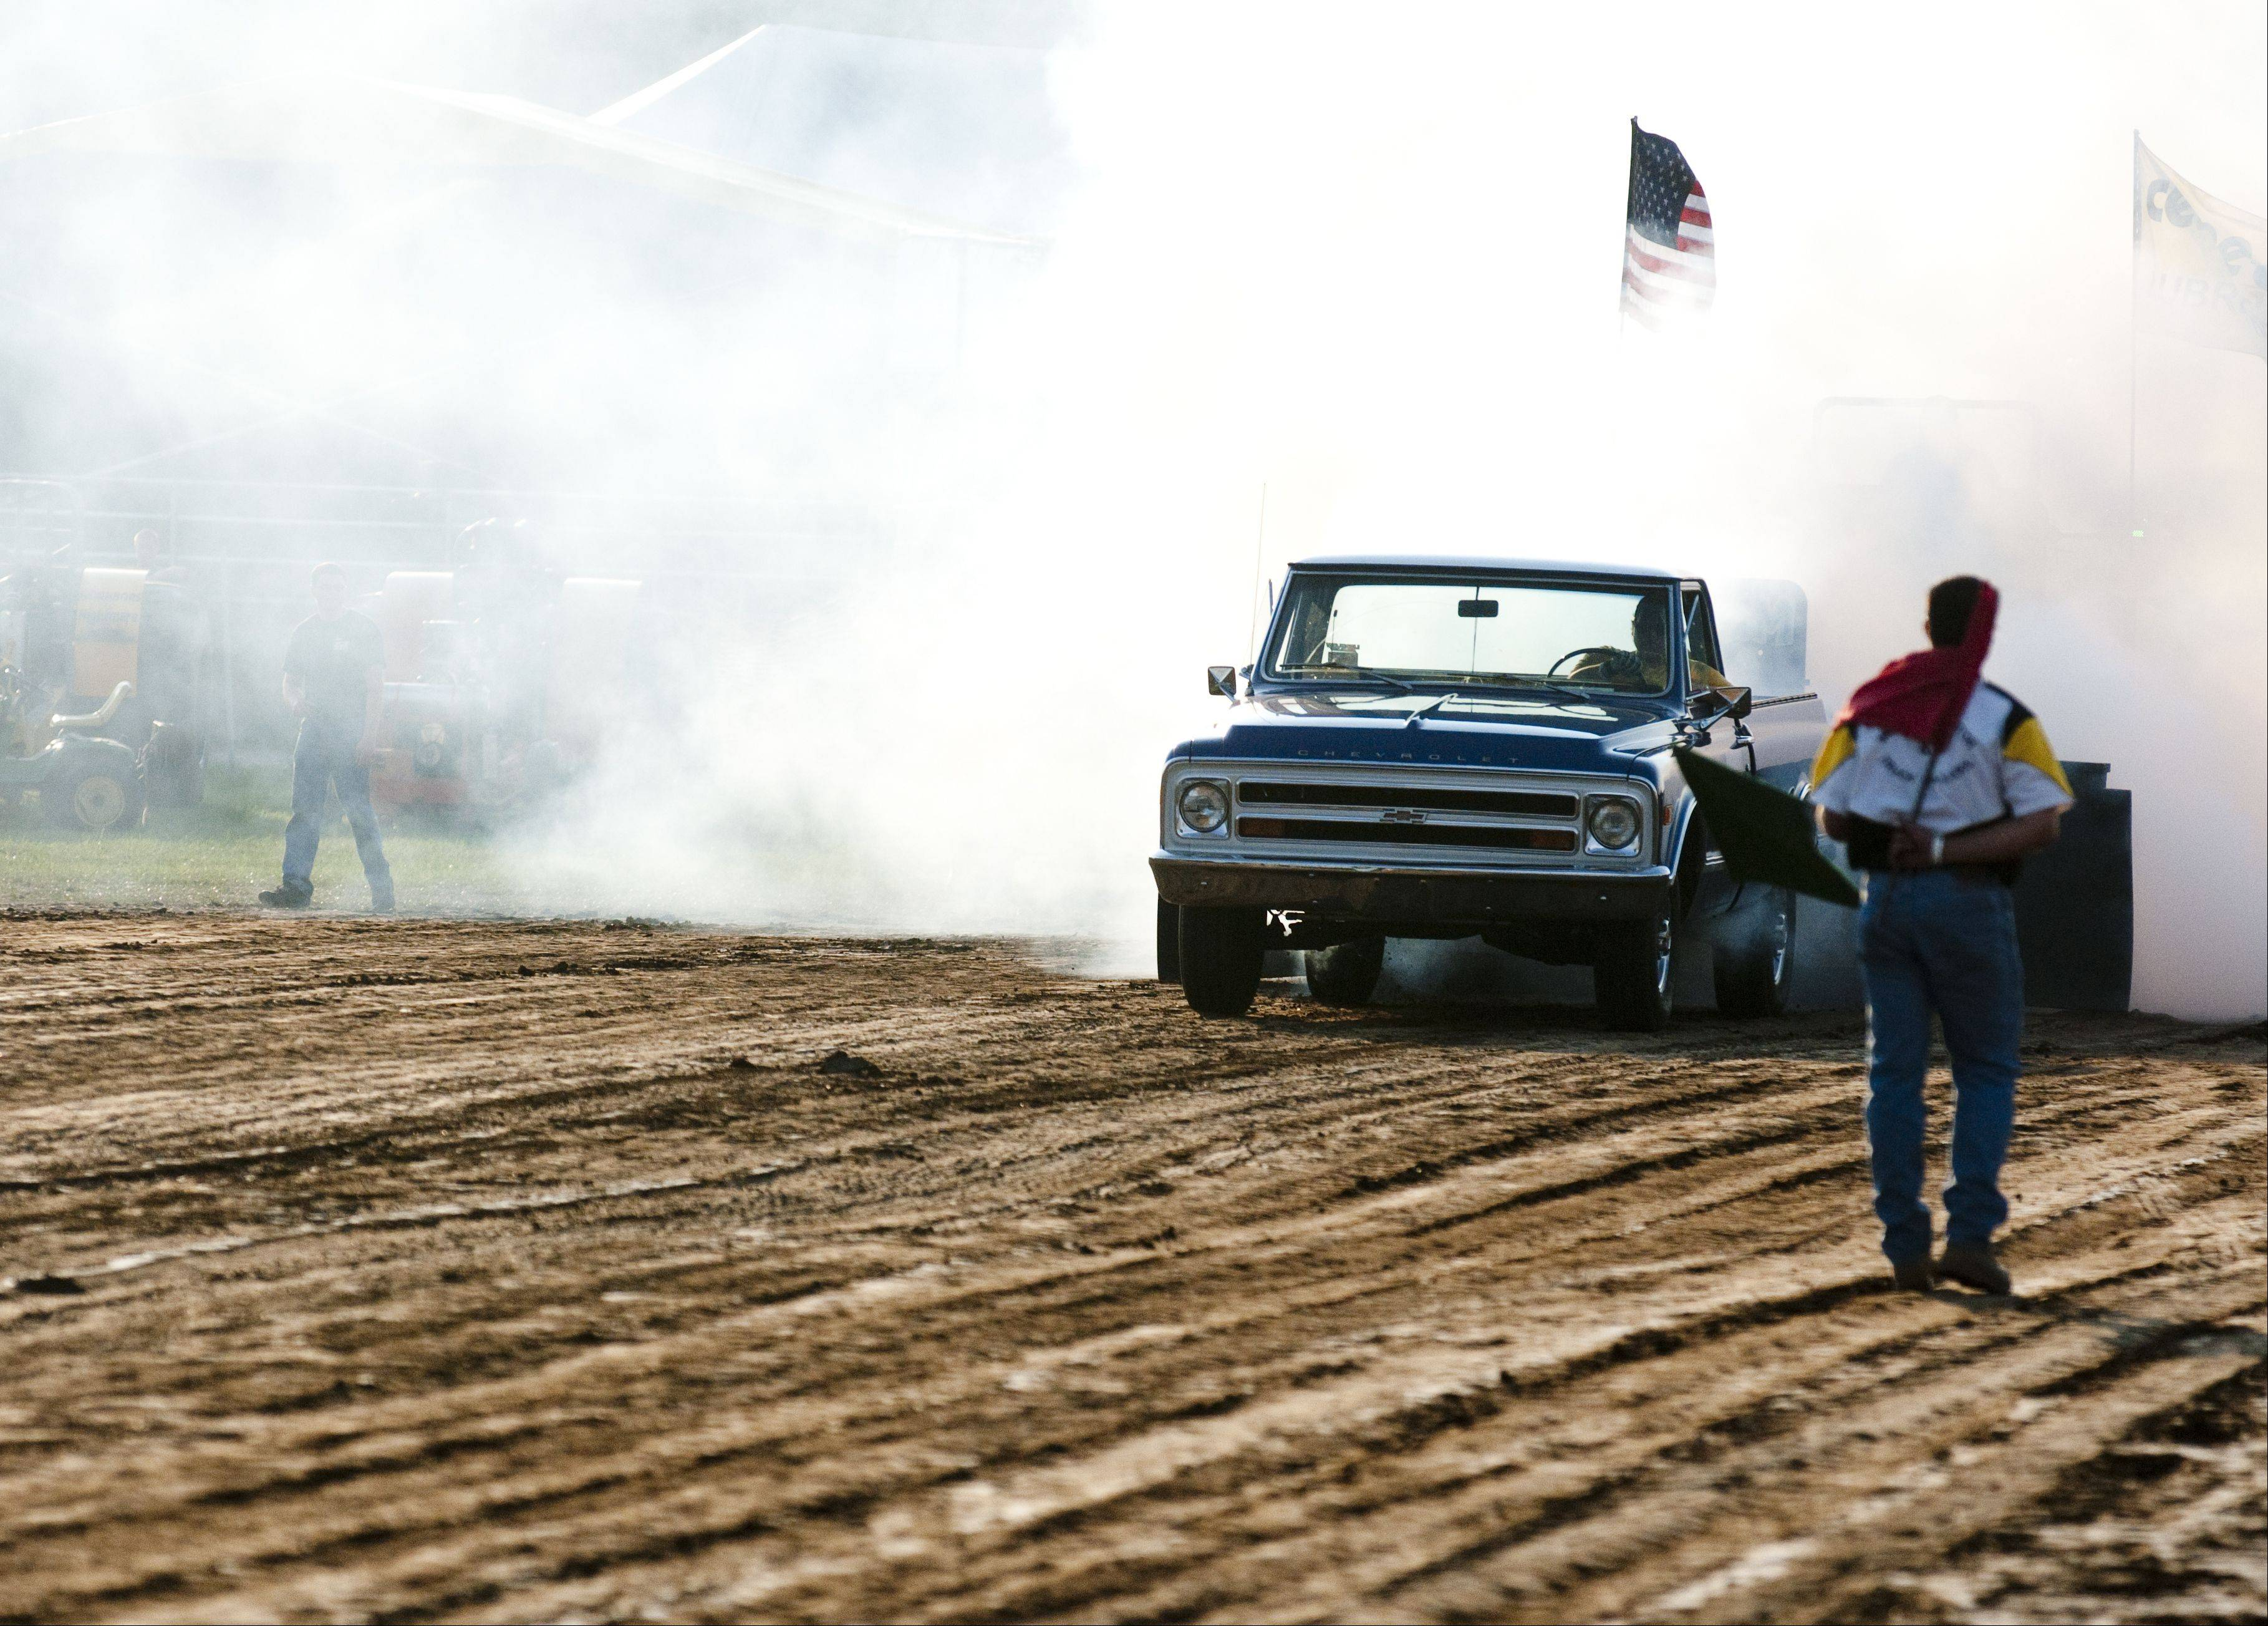 The first competitor kicks up dust to start the Truck and Tractor Pulls competition at last year's McHenry County Fair.